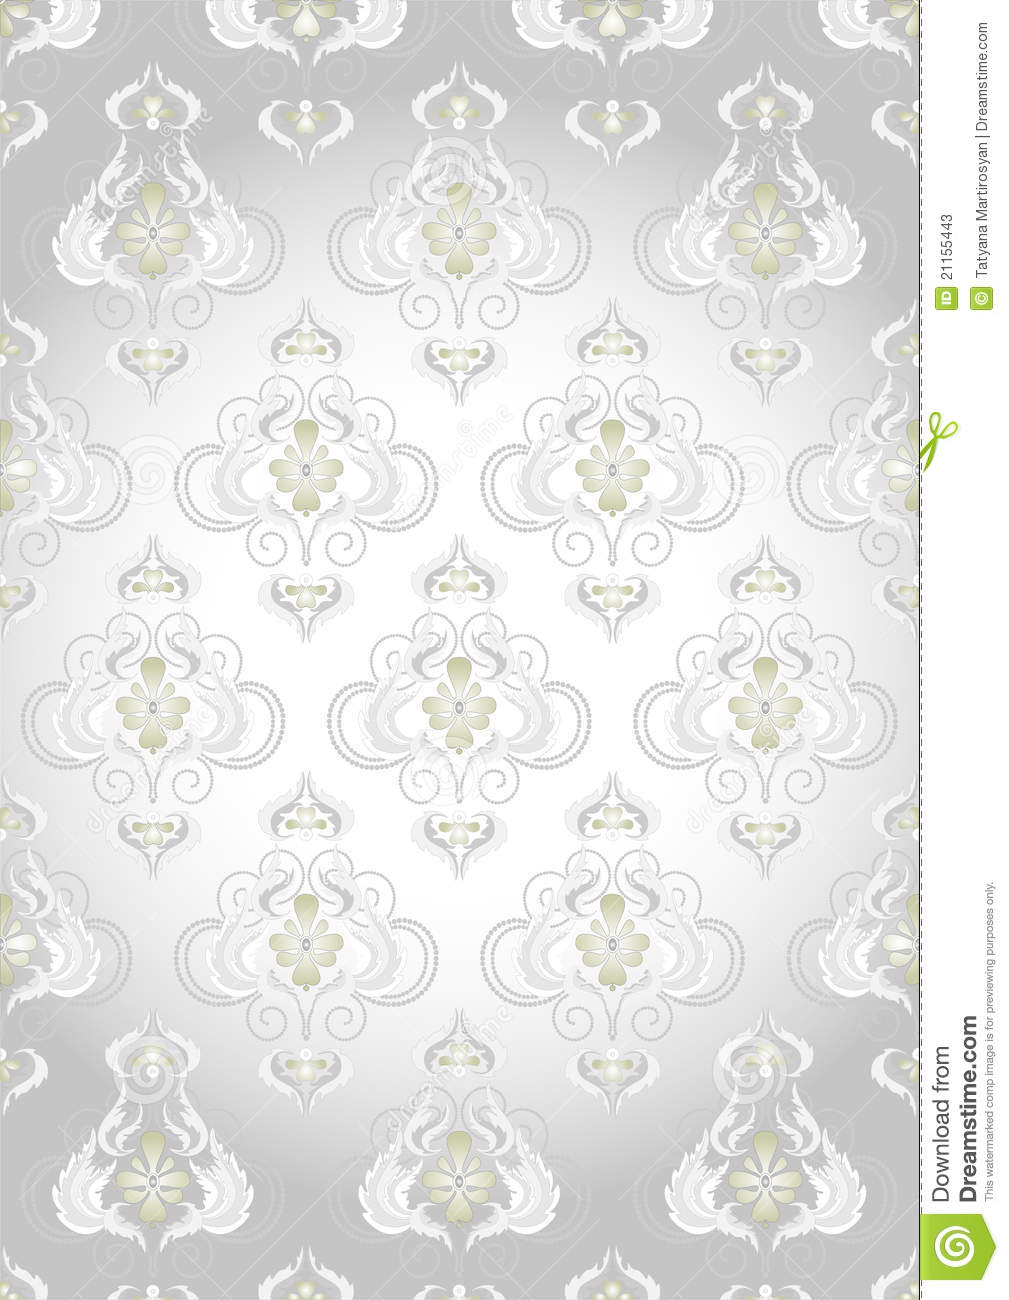 oriental pattern on a silver background wallpaper stock photos image 21155443. Black Bedroom Furniture Sets. Home Design Ideas